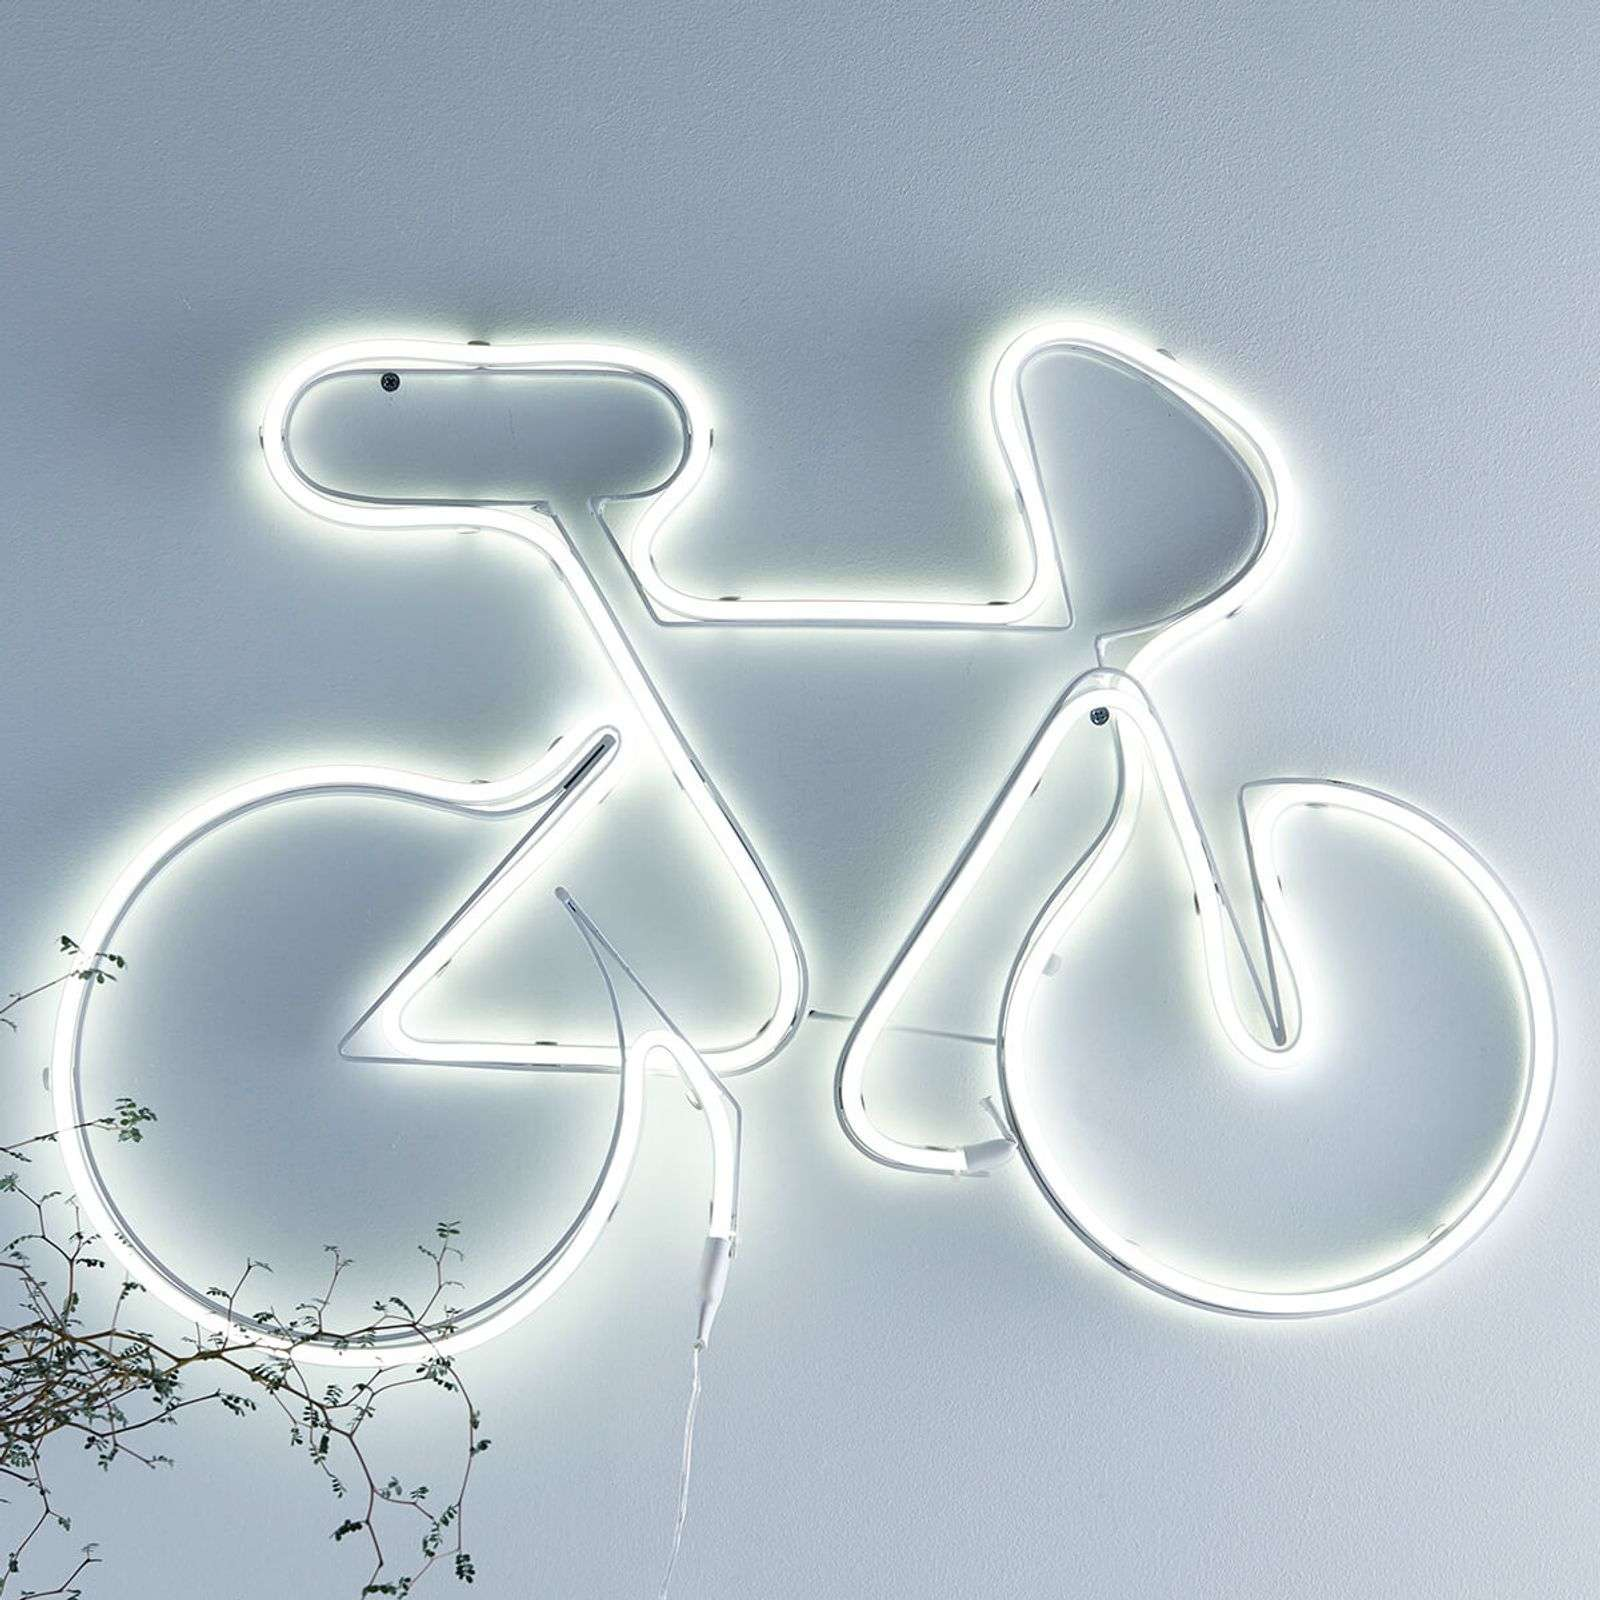 Lampada decorativa a LED New York a forma di bici